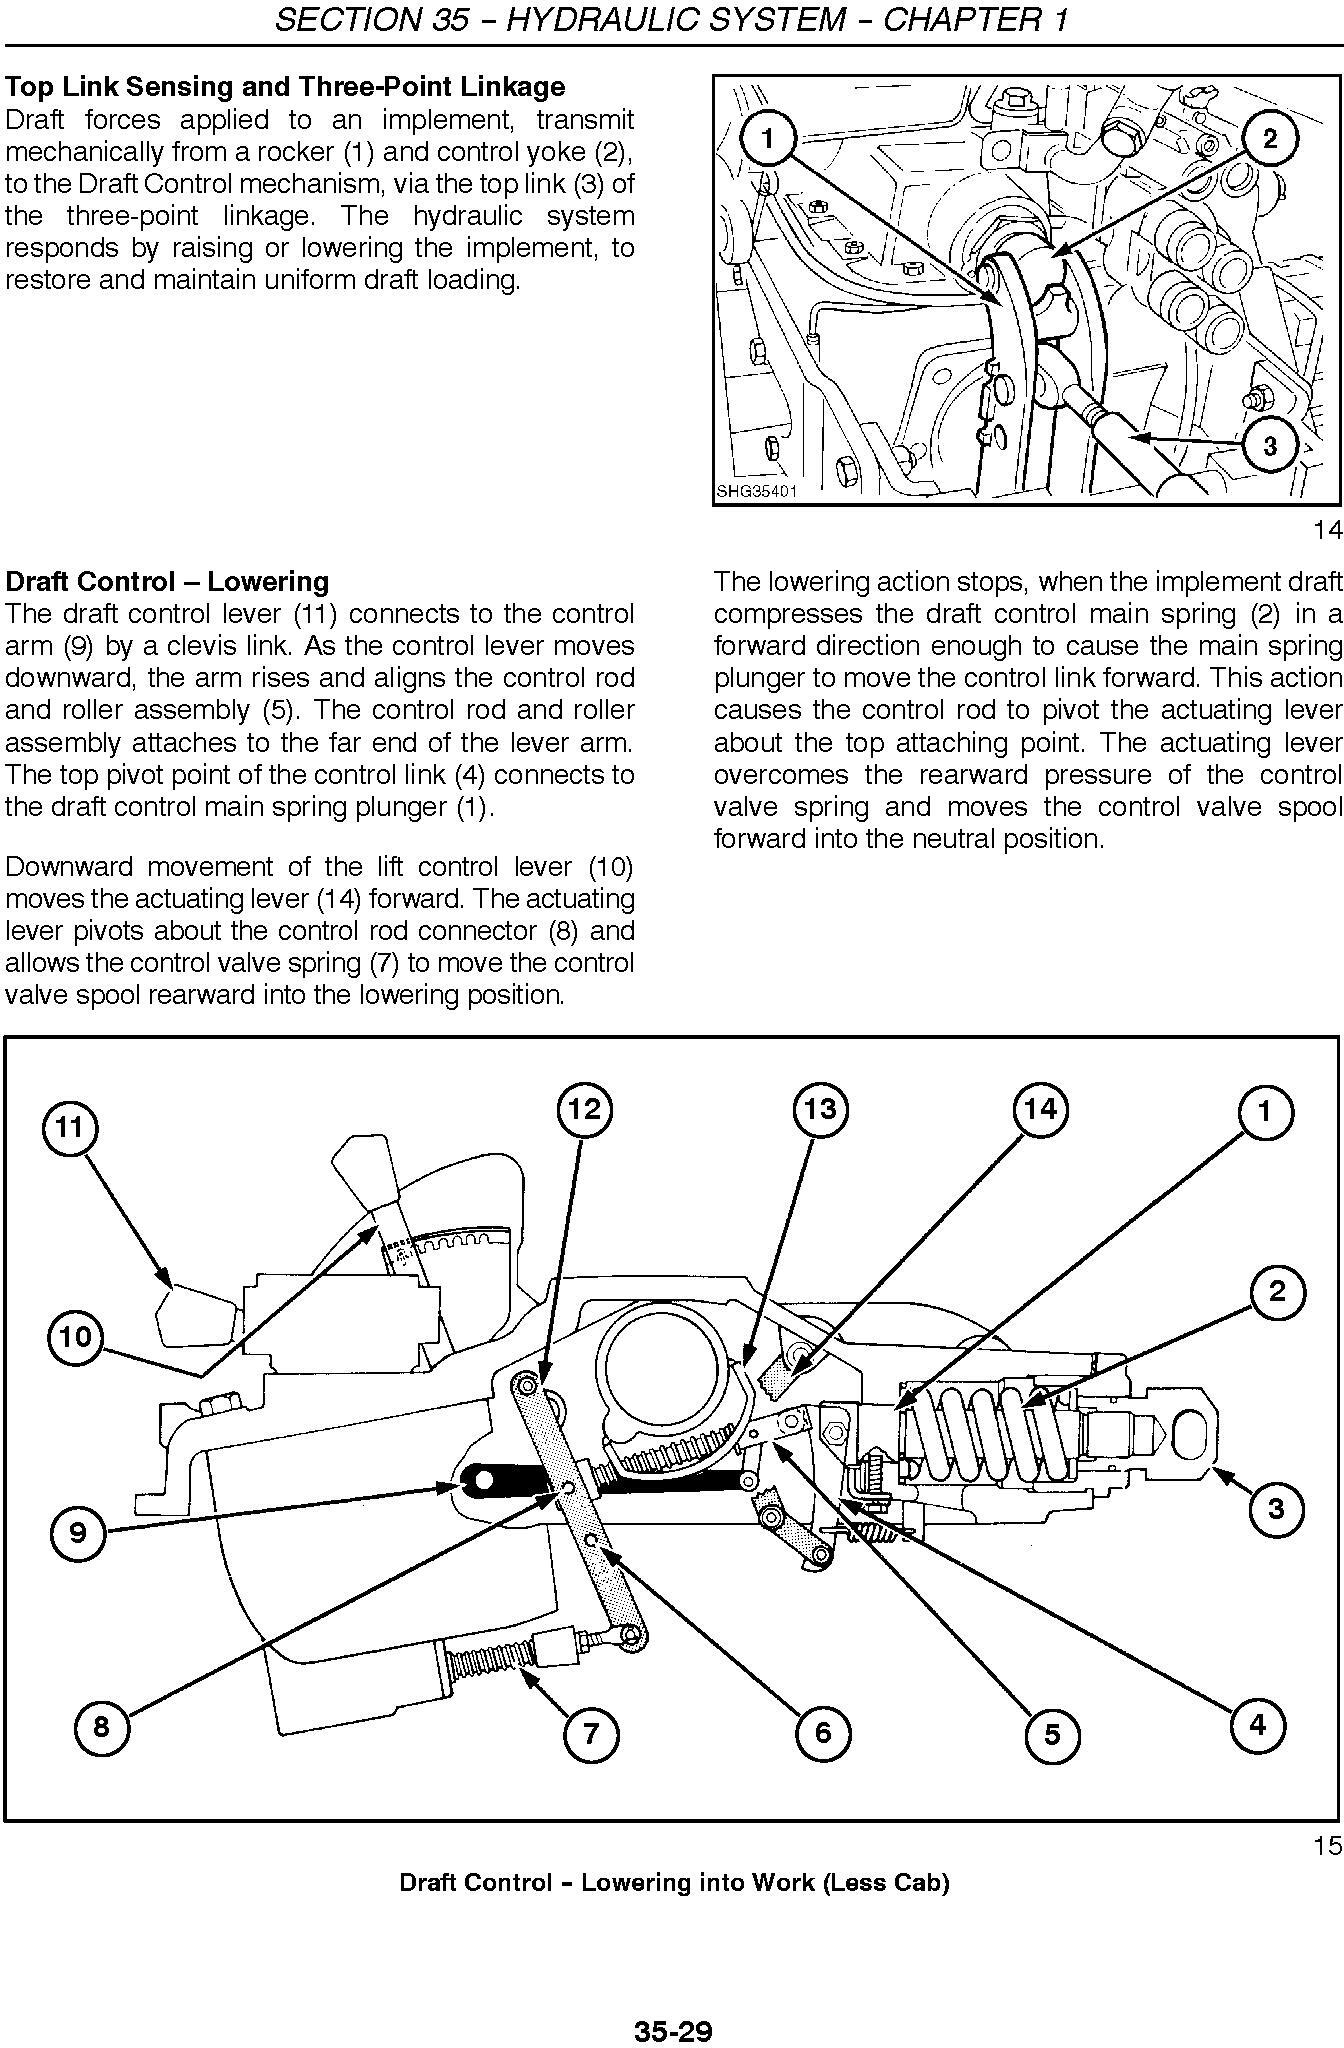 New Holland TB100, TB110, TB120, TB120 Mudder Tractor Complete Service Manual - 3